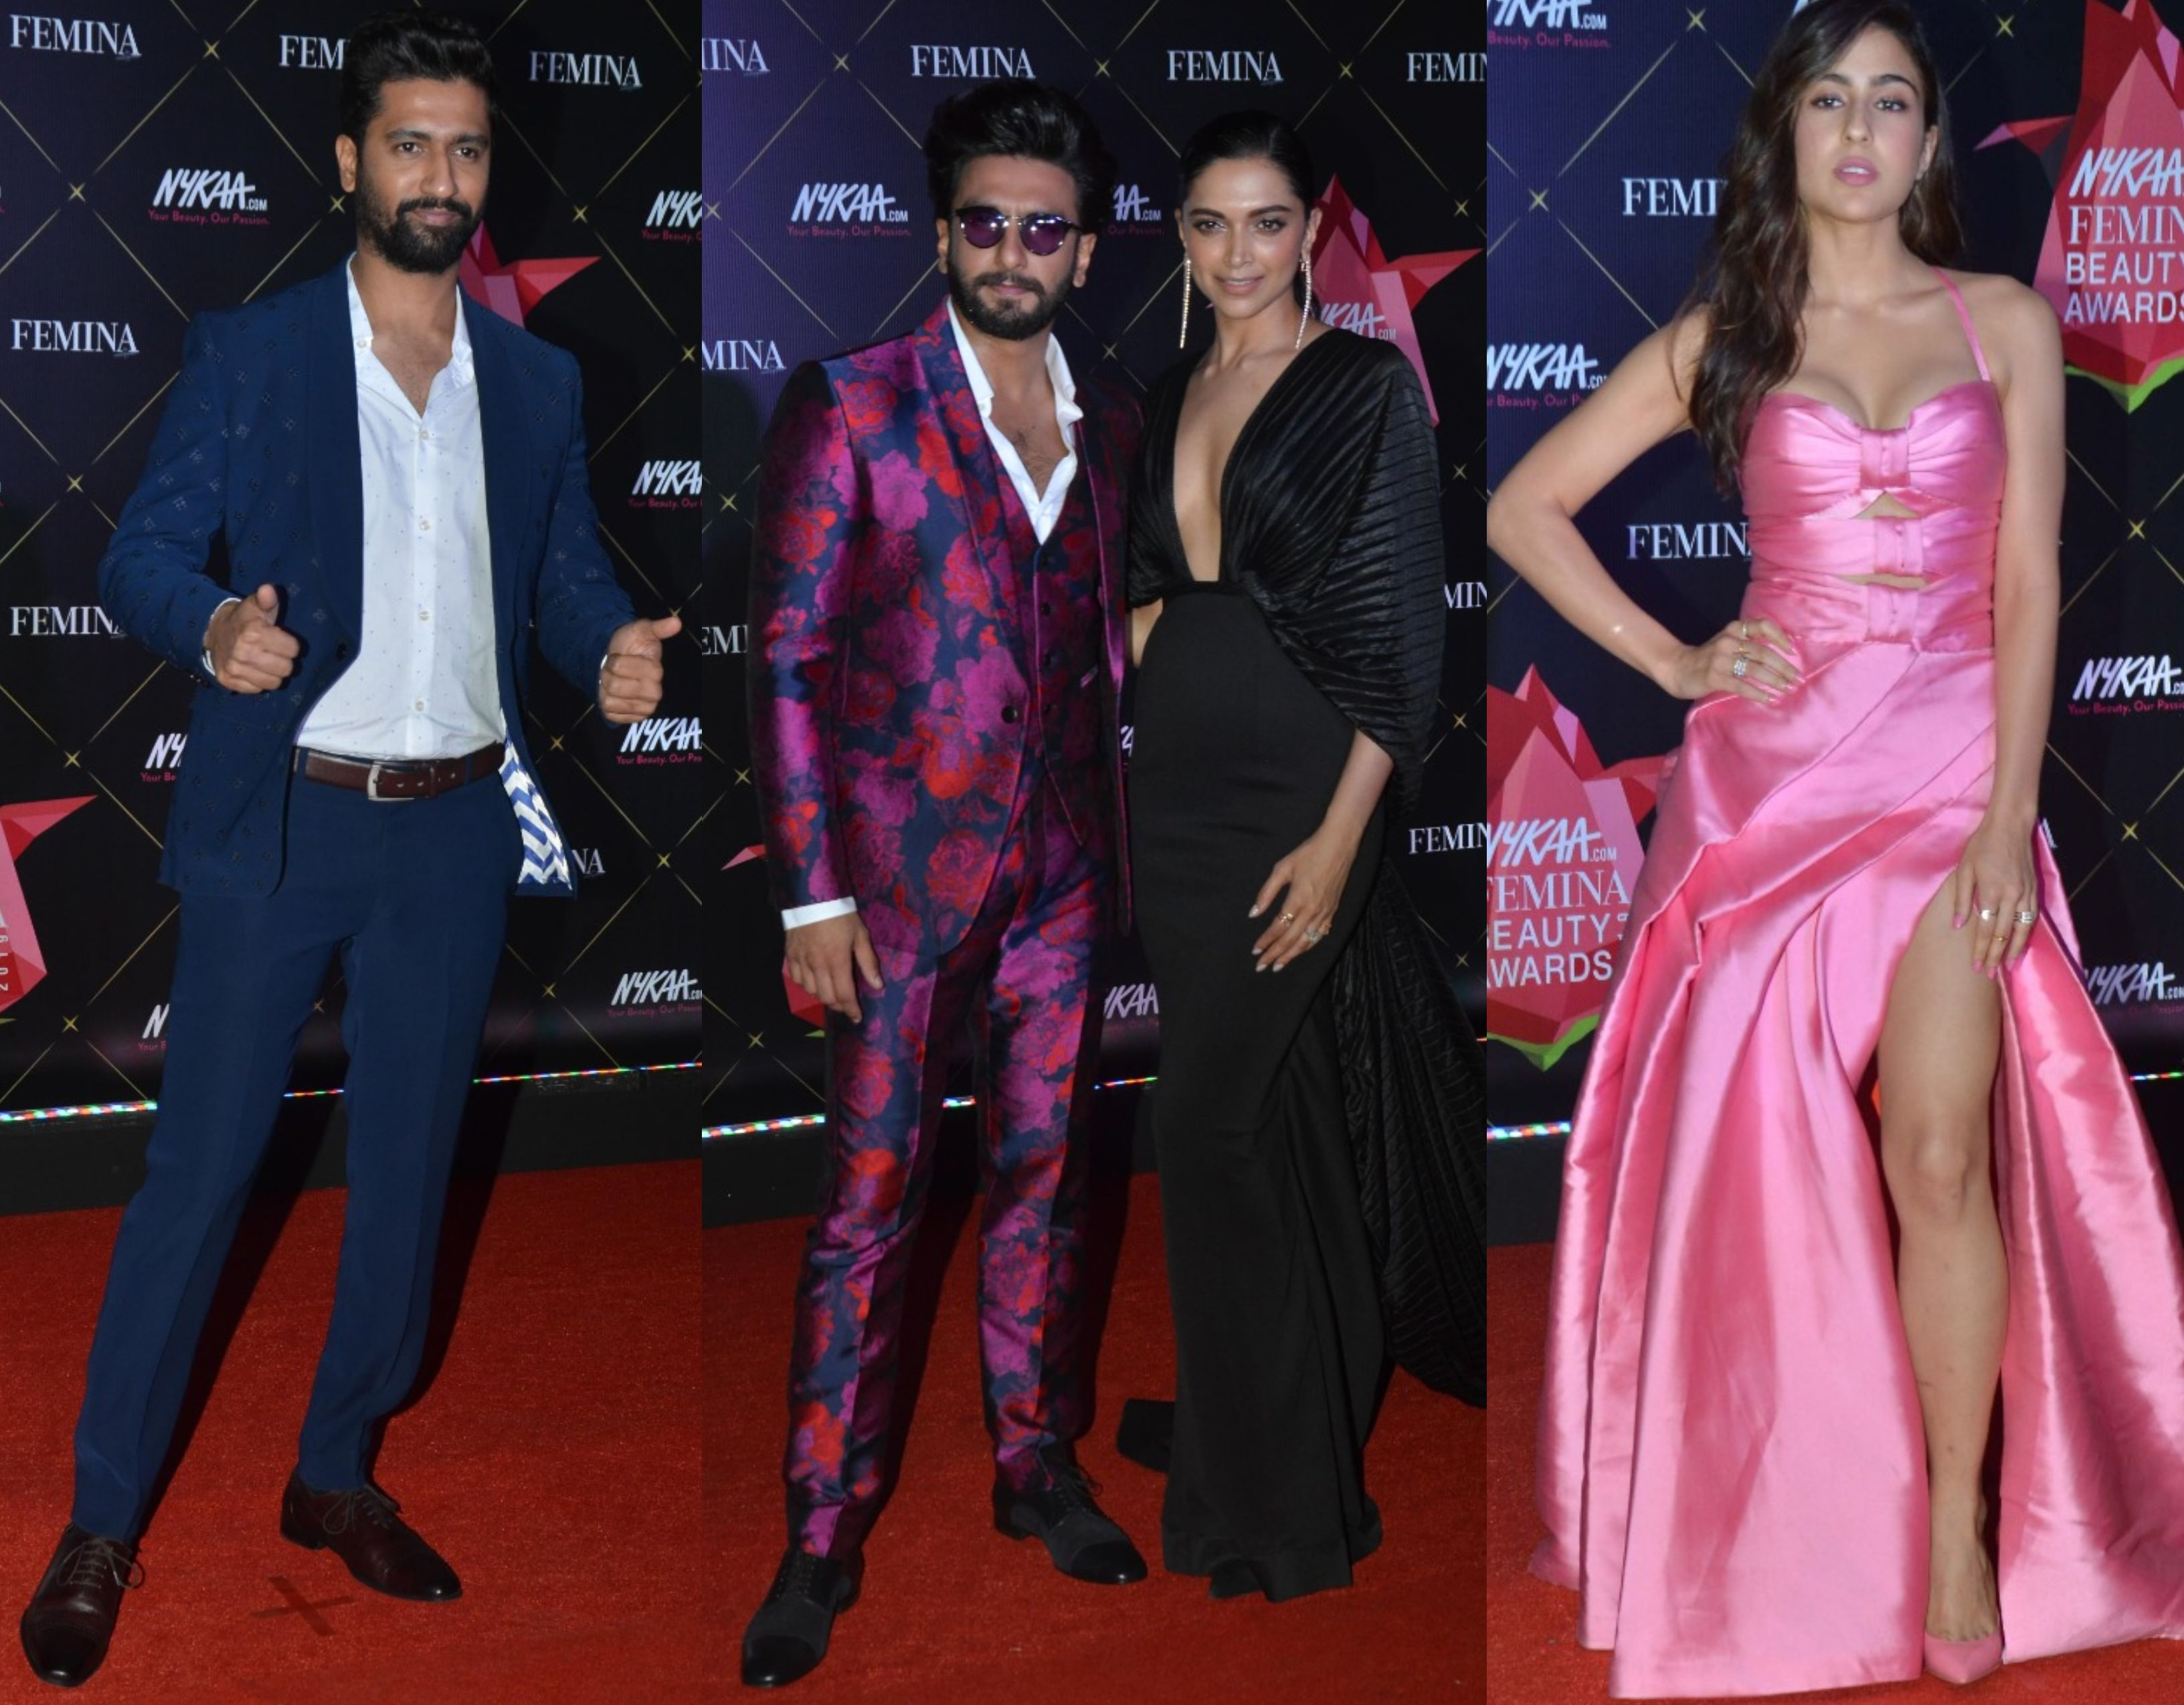 Nykaa Femina Beauty Awards 2019